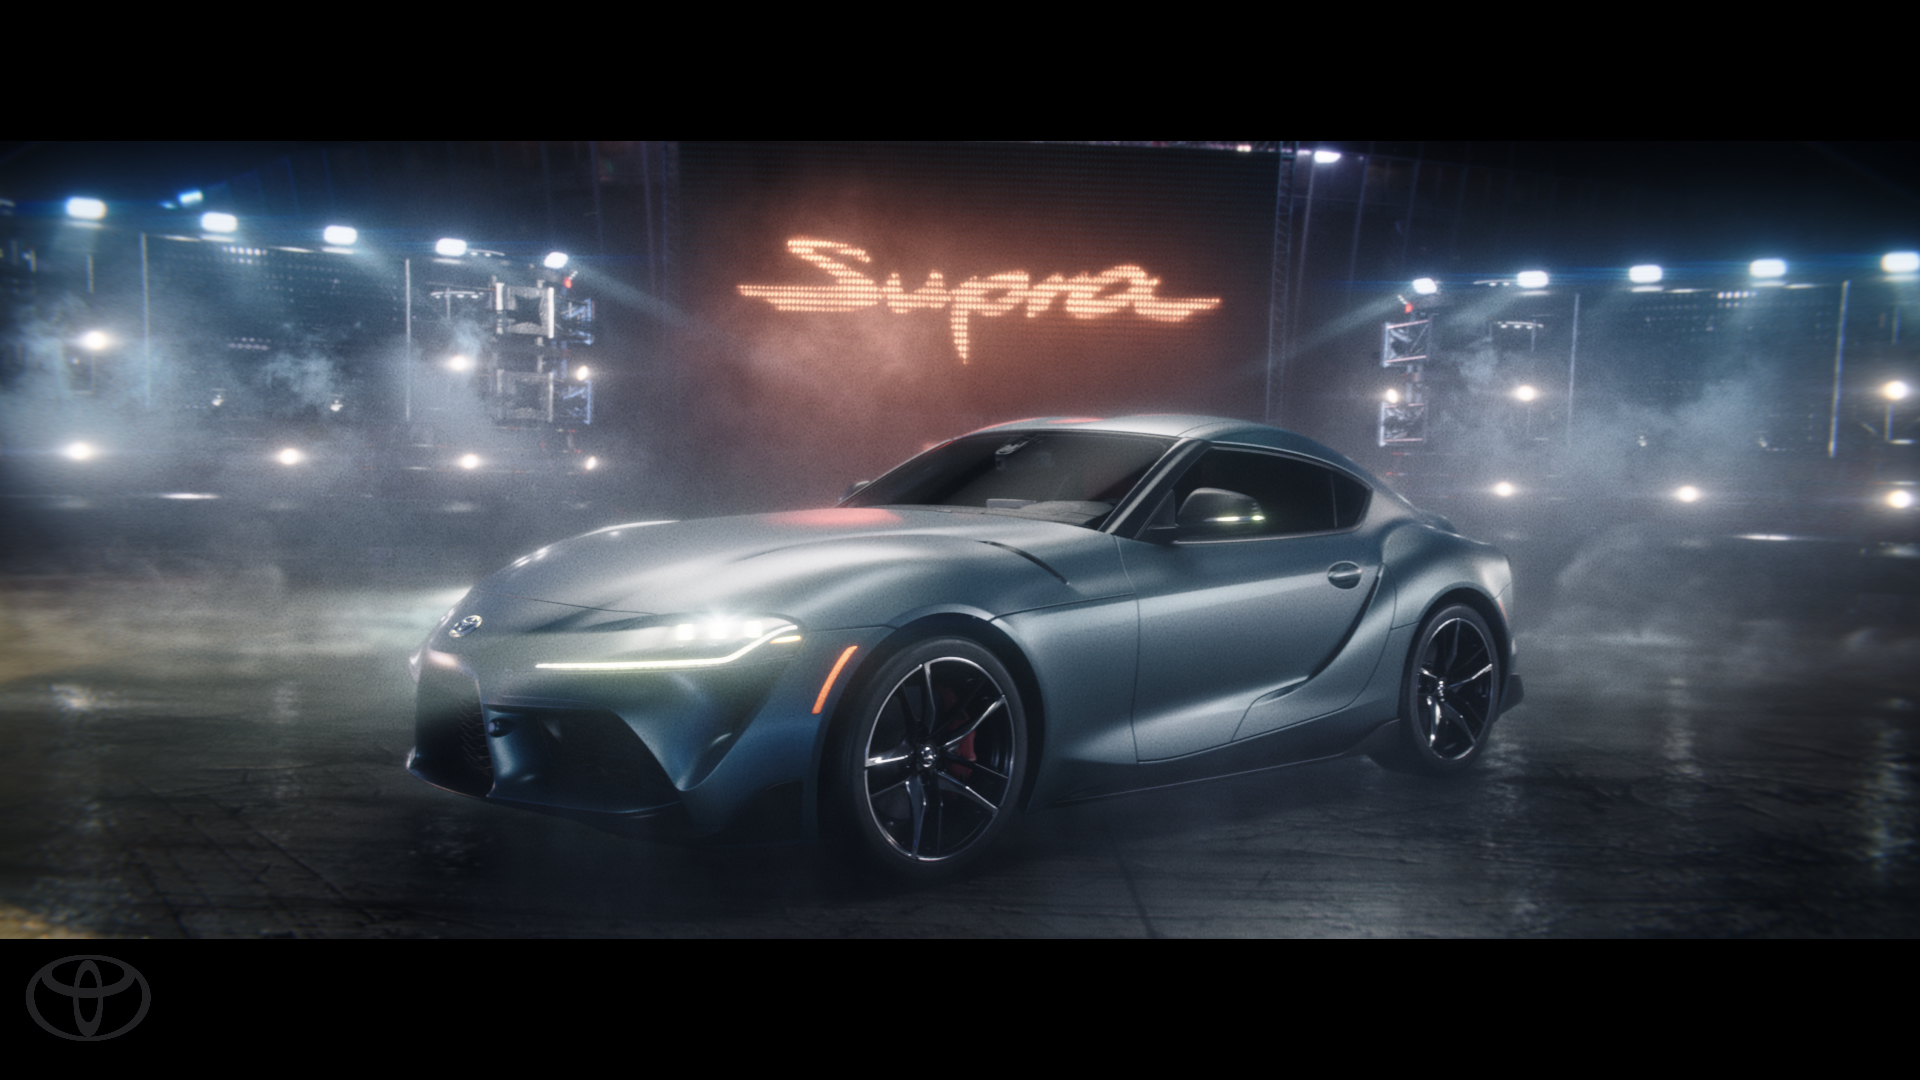 Best Car Commercials 2020 The Best And Worst Car Commercials From Super Bowl LIII | Top Speed